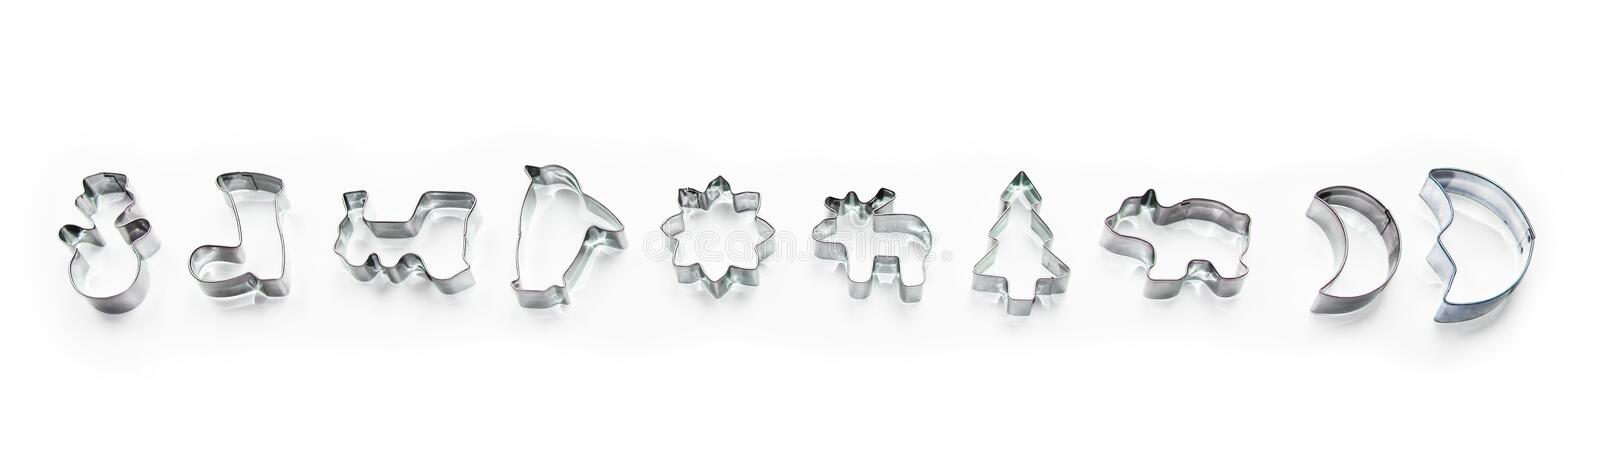 Banner made of shiny christmas silver biscuit shapes, cookie cutter isolated on white background with shadows royalty free stock images